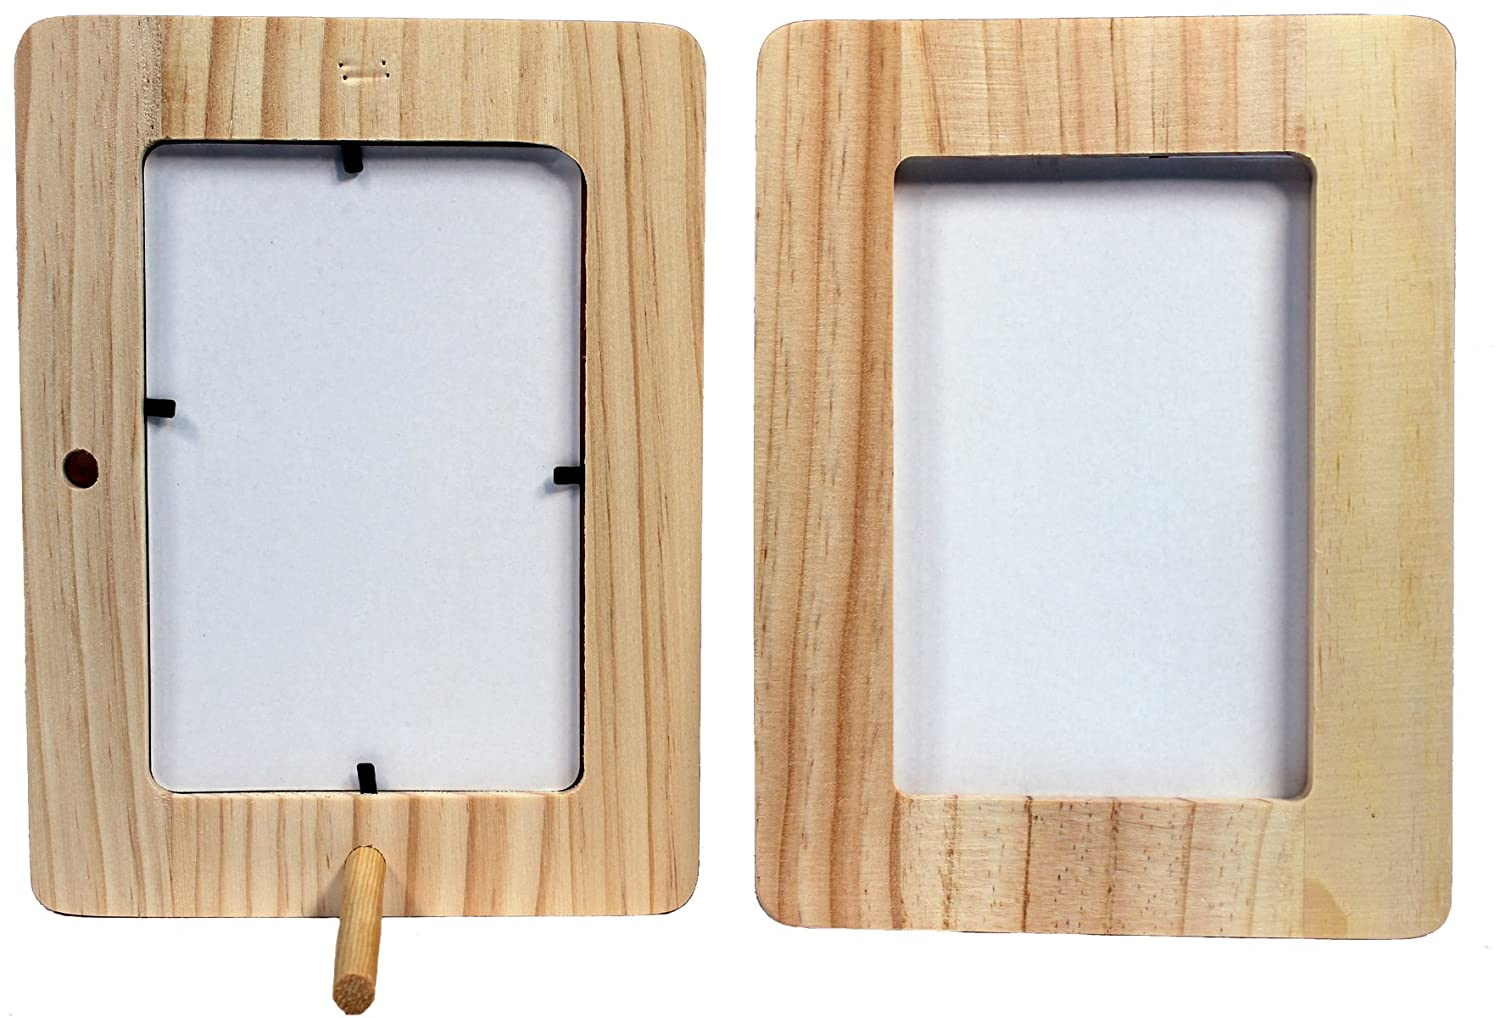 wood picture frames. Amazon.com: Creative Hobbies Unfinished 1/2 Inch Thick Wood Craft Picture Frame Holds 4x6 Photo - Peg Stand Included Frames C